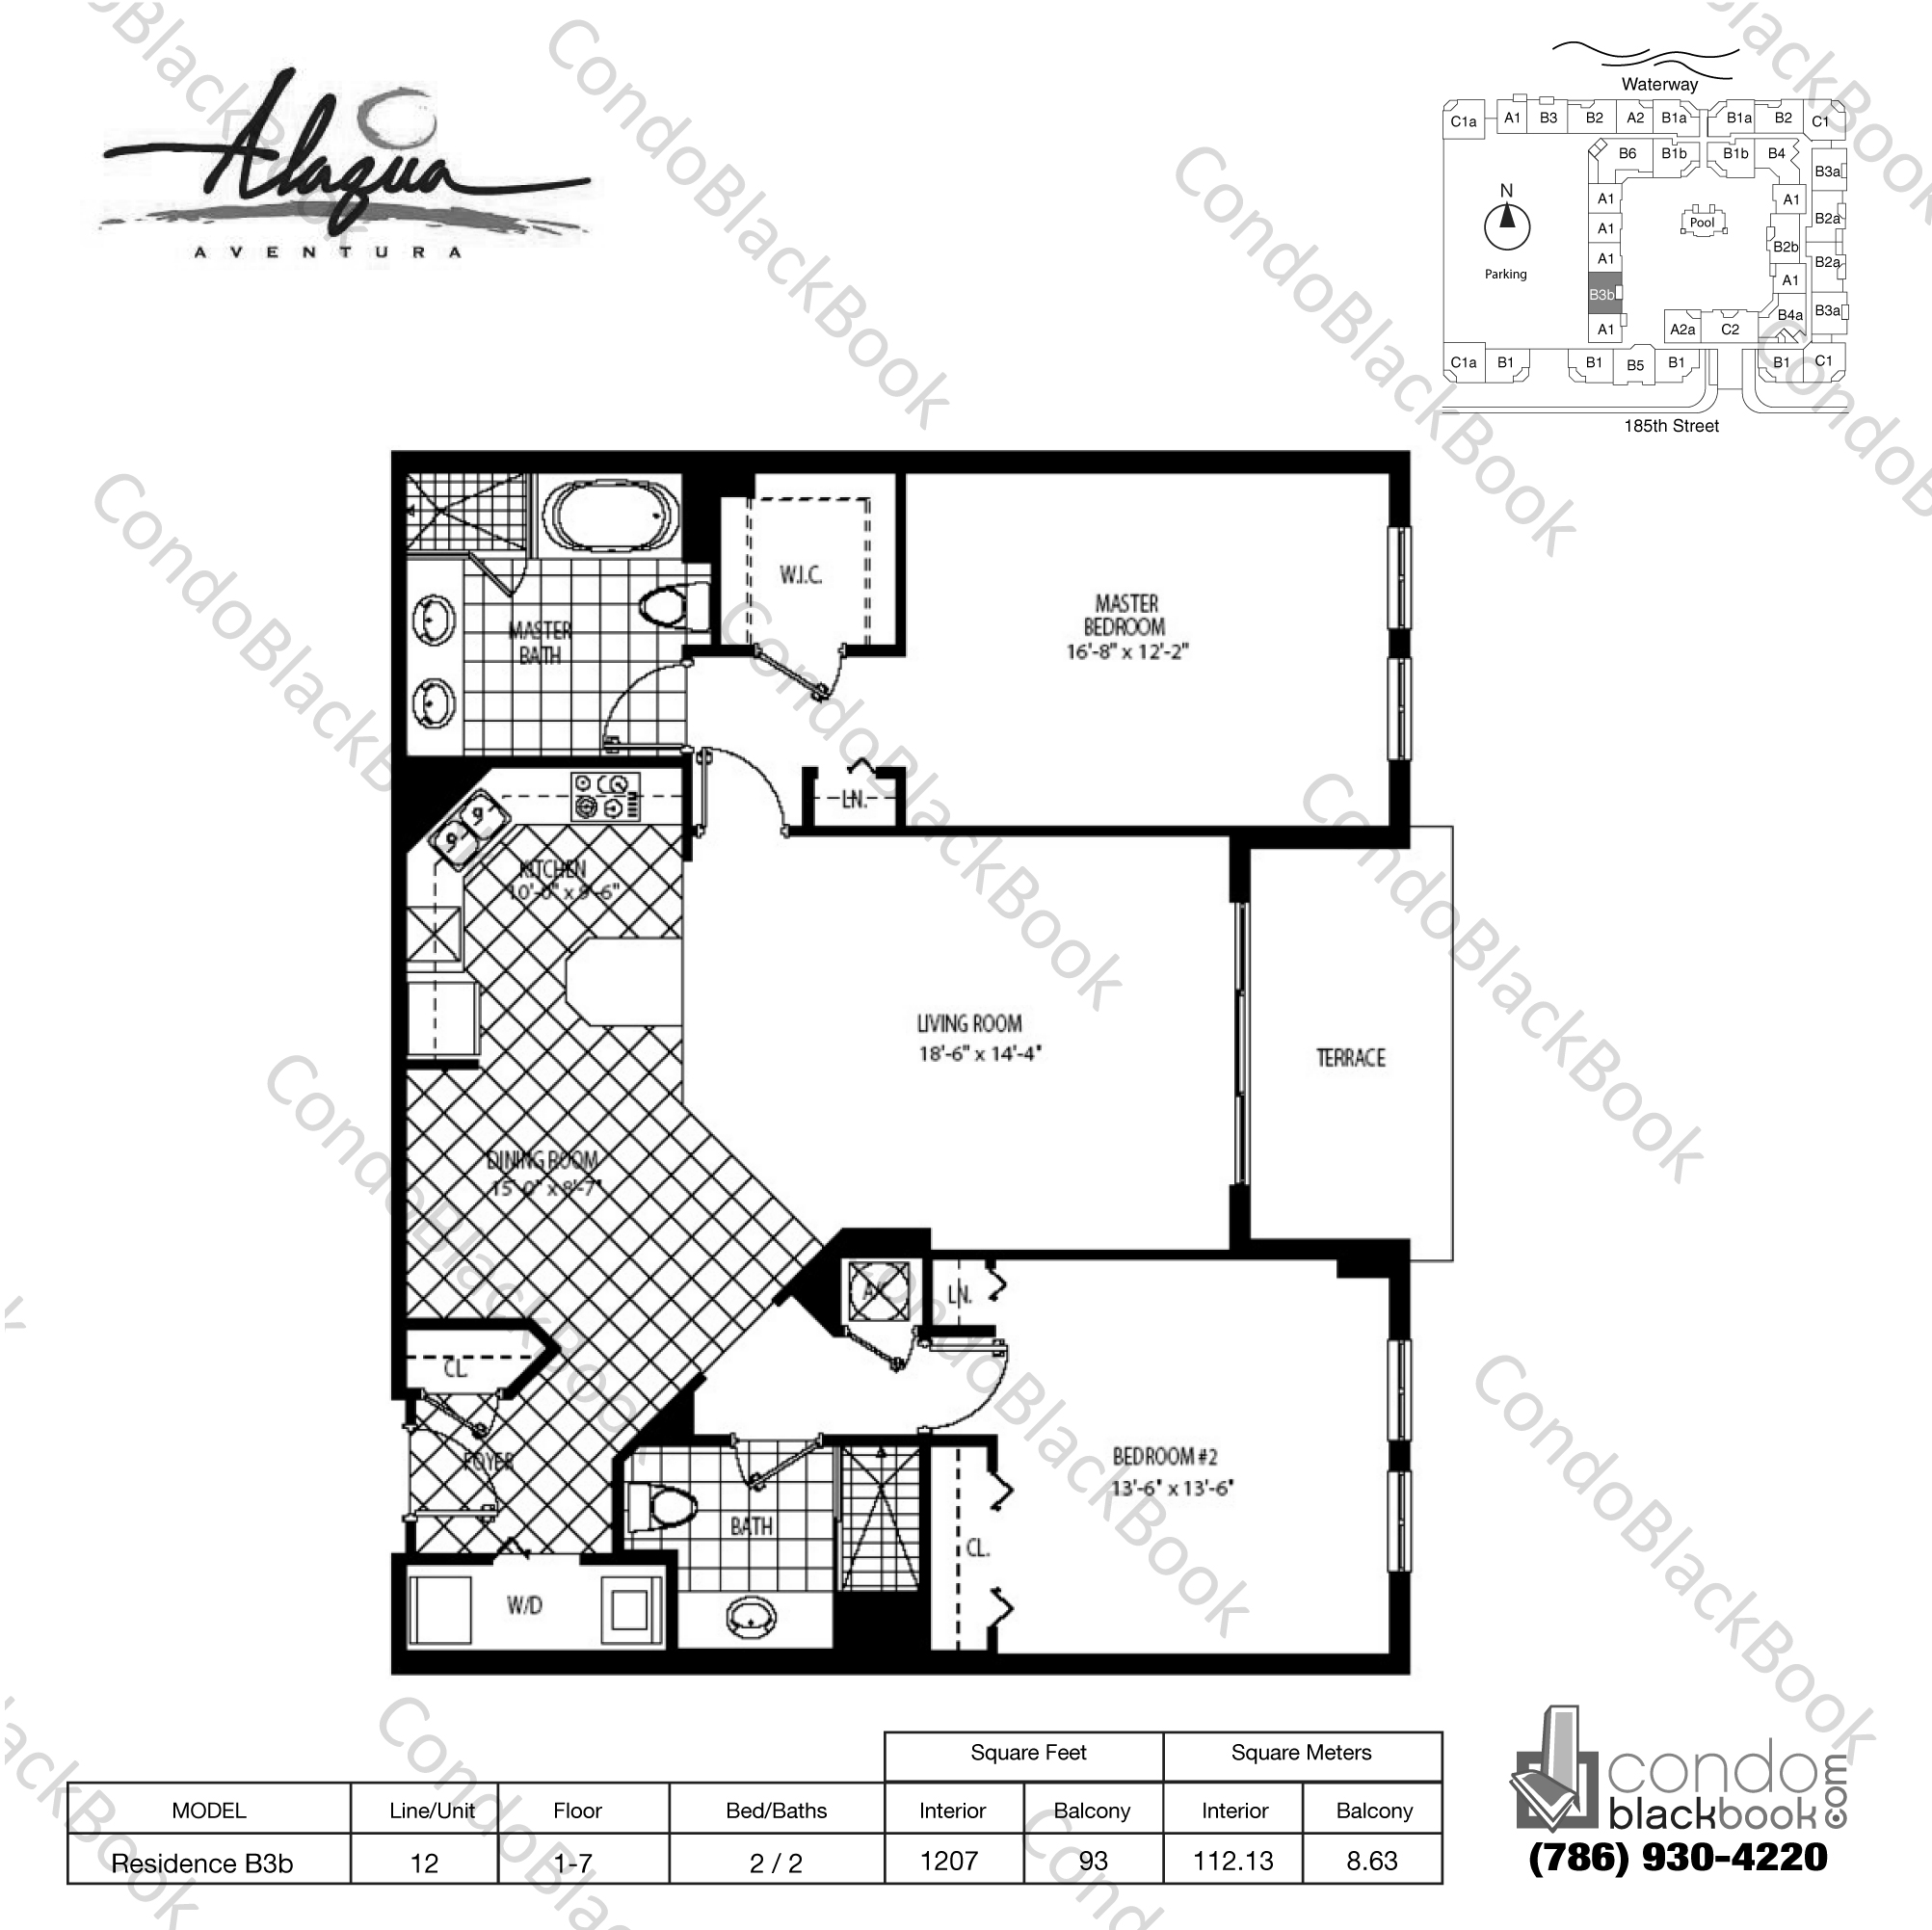 Floor plan for Alaqua Aventura, model Residence B3b, line 12, 2 / 2 bedrooms, 1207 sq ft